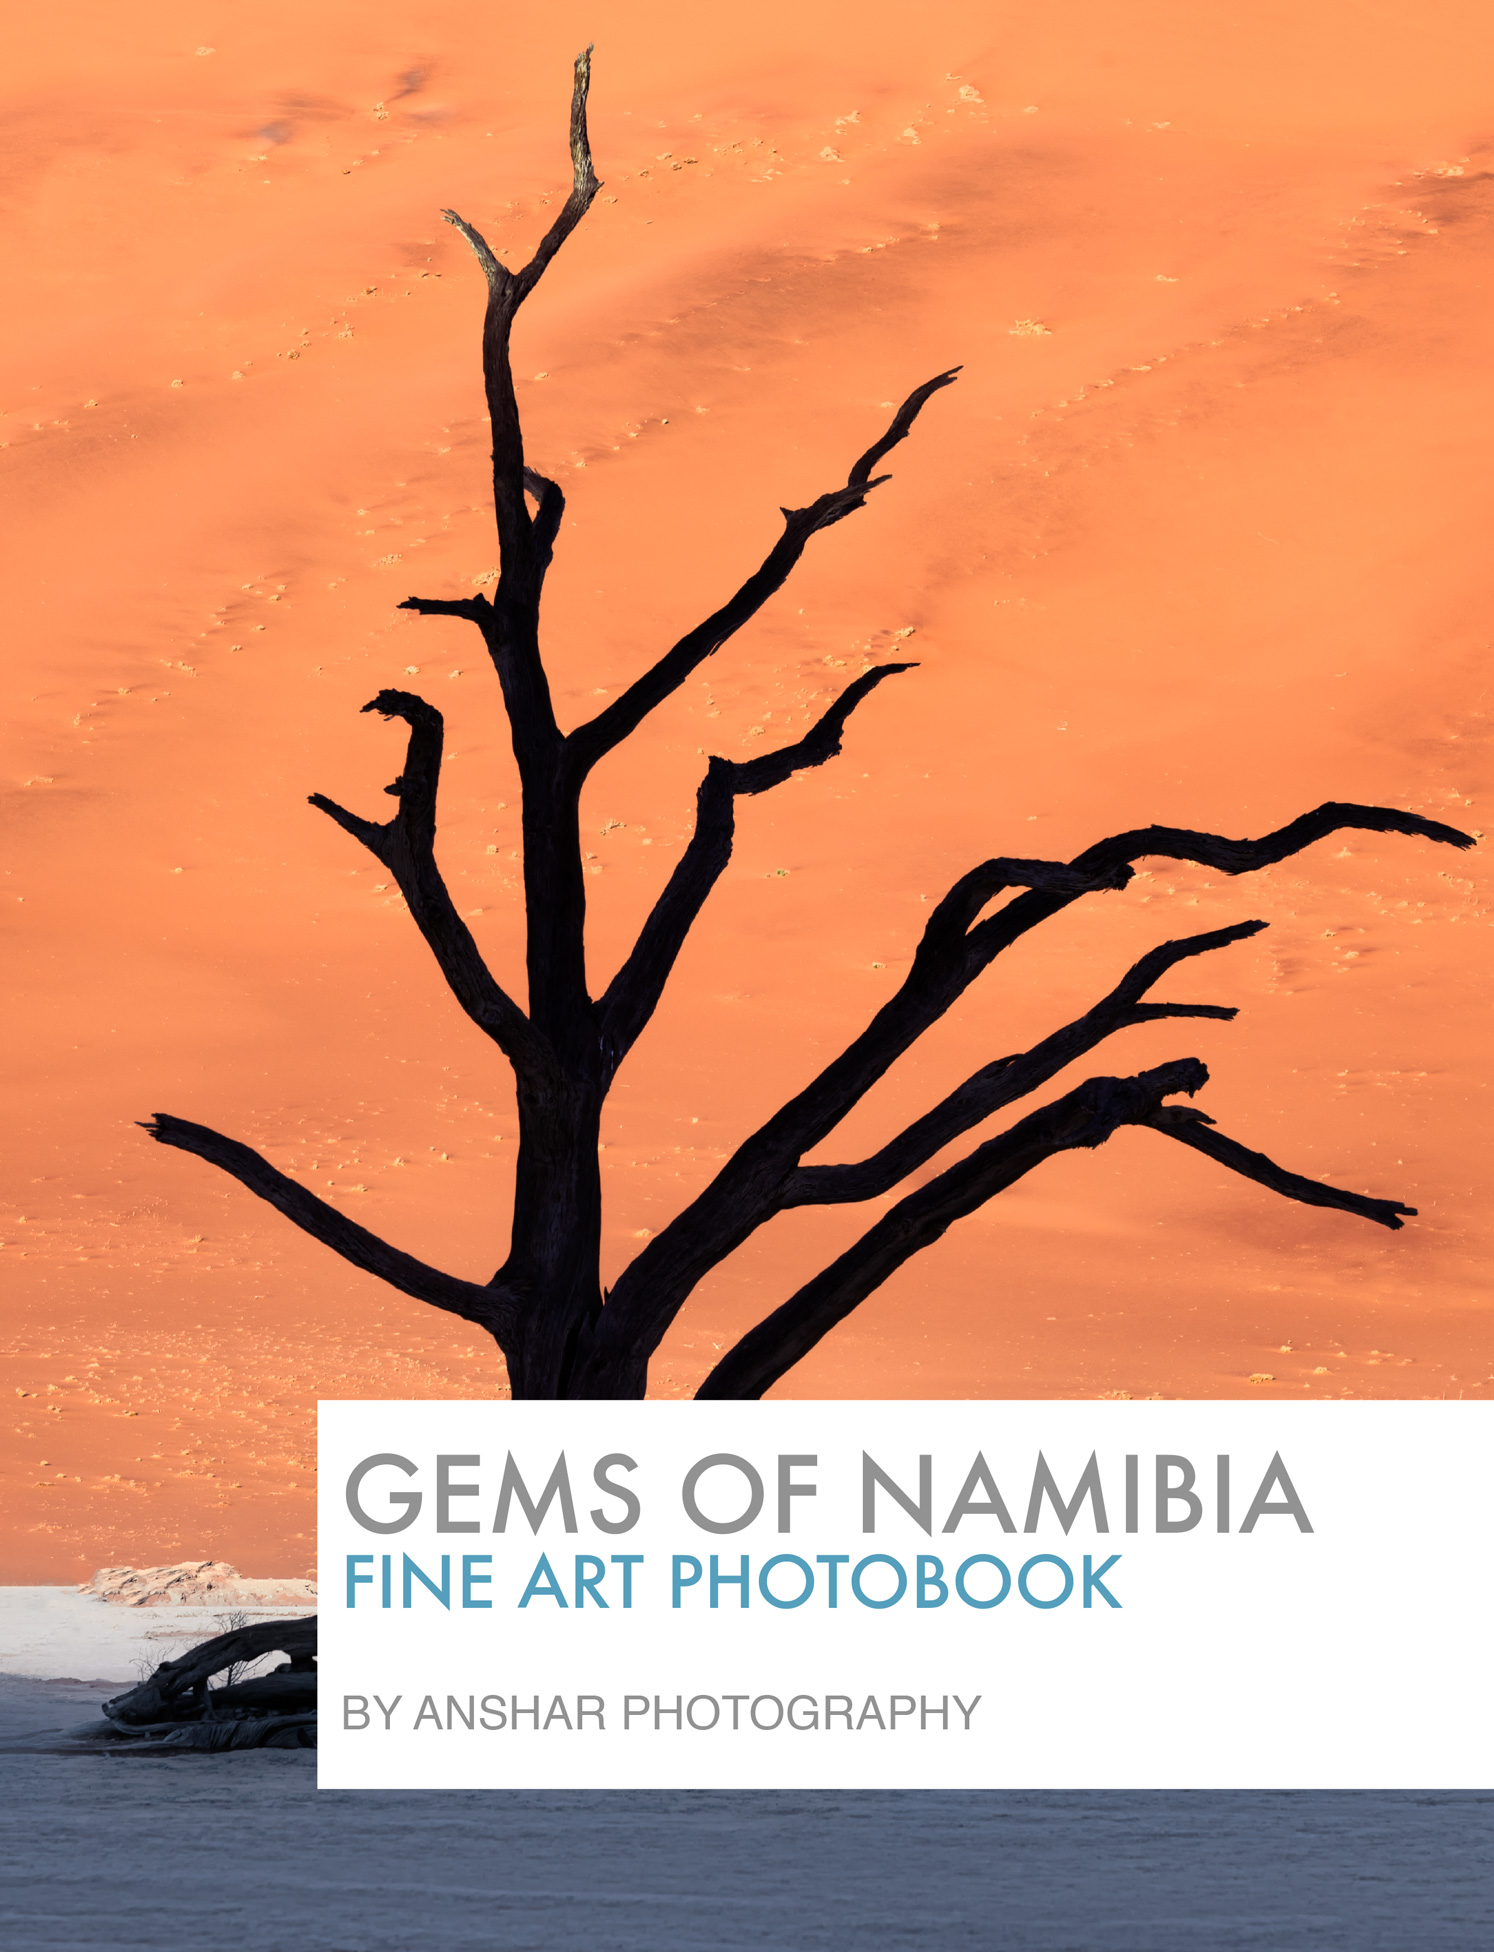 Gems of Namibia Fine Art Photobook by Anshar Photography